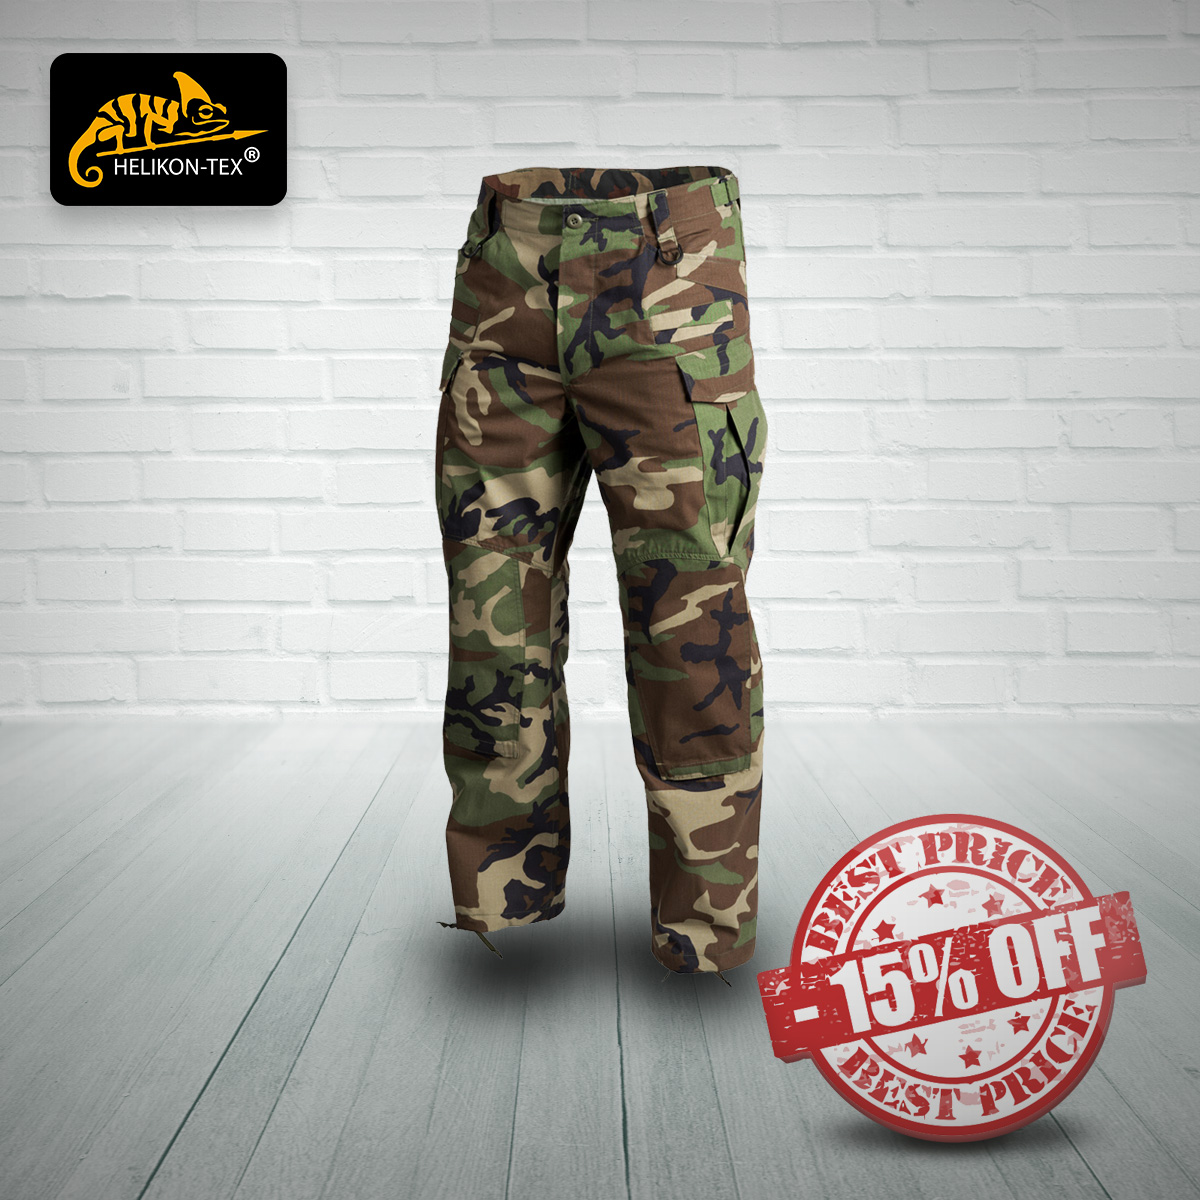 !-sales-1200x1200-helikon-sfu-next-trousers